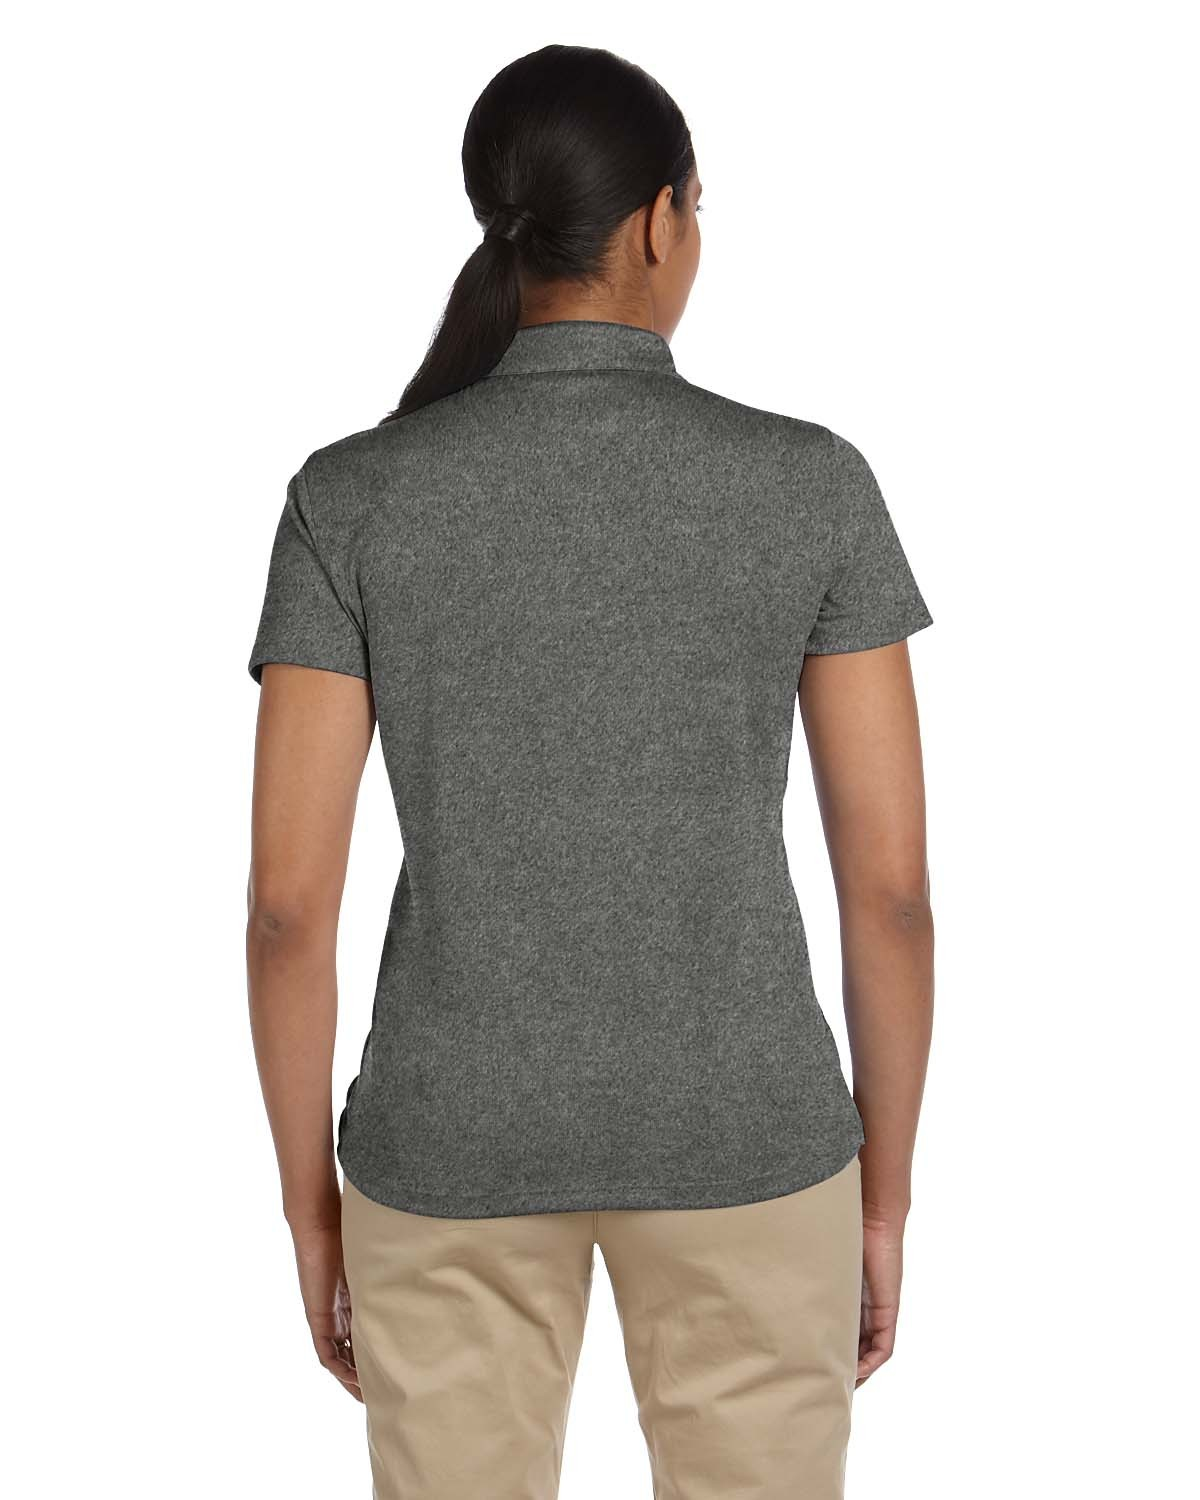 Shop for kids long sleeve t shirt online at Target. Free shipping on purchases over $35 and save 5% every day with your Target REDcard.